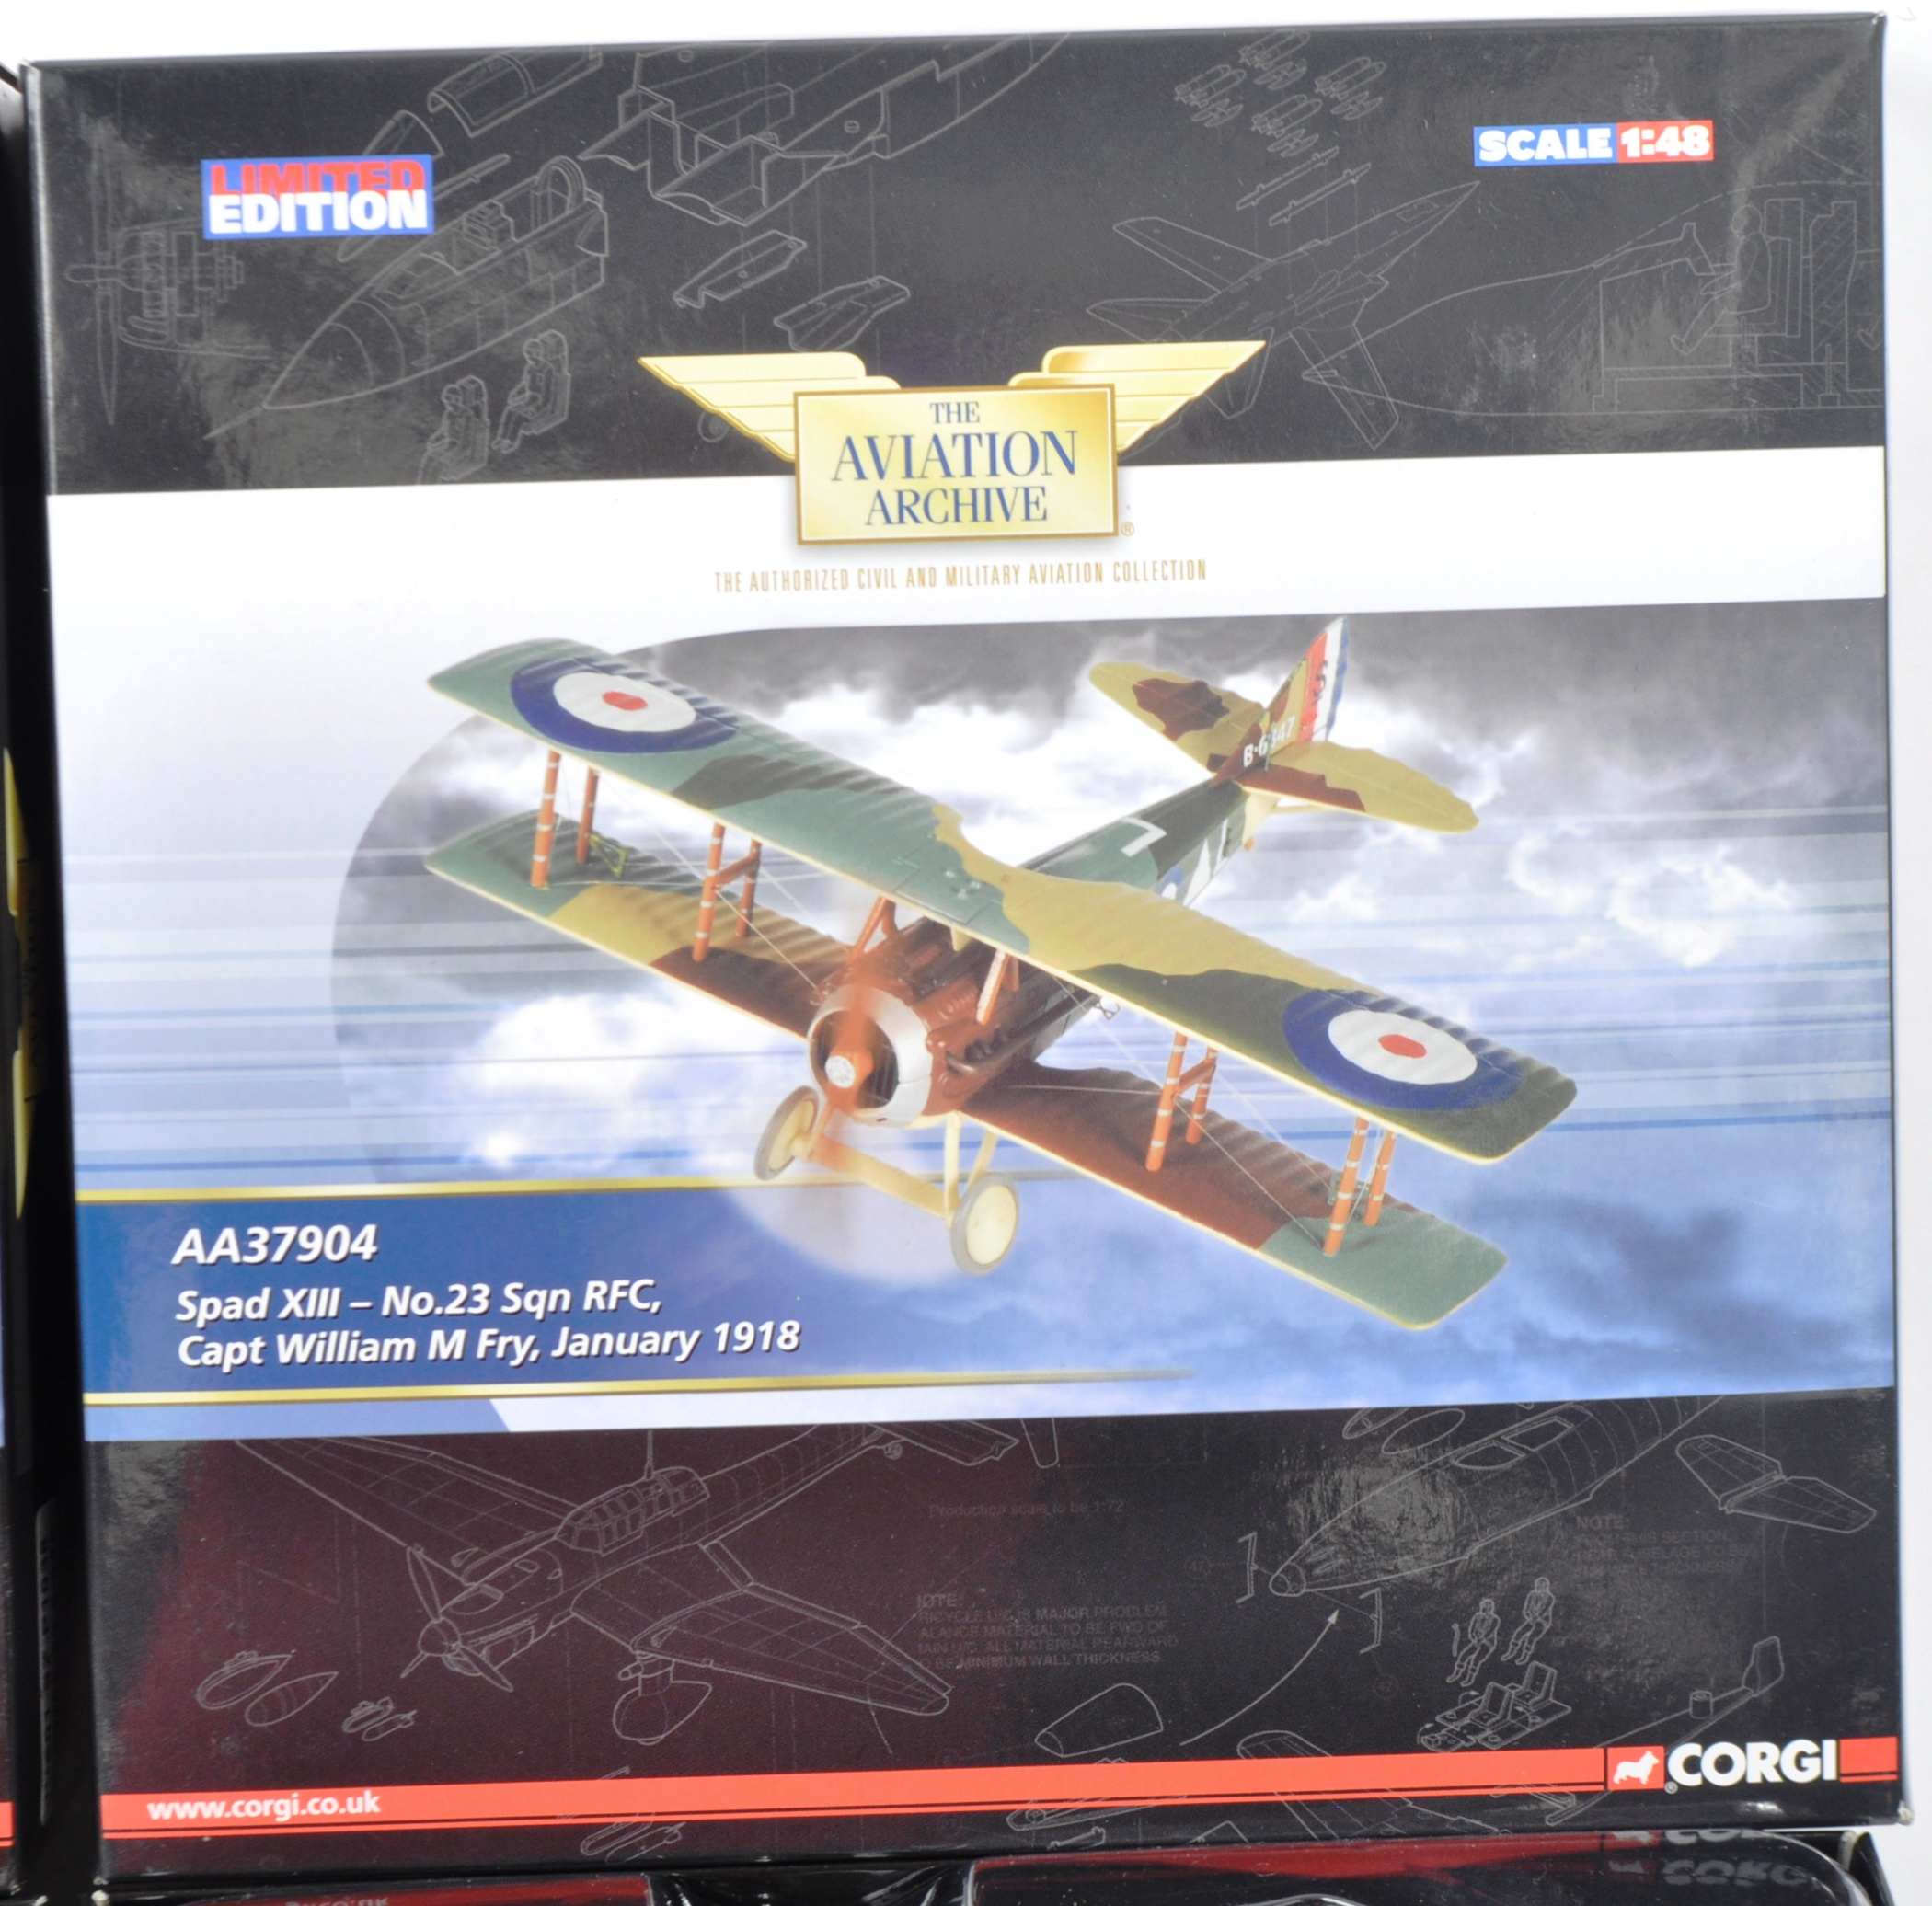 CORGI AVIATION ARCHIVE - TWO BOXED DIECAST MODELS - Image 6 of 6